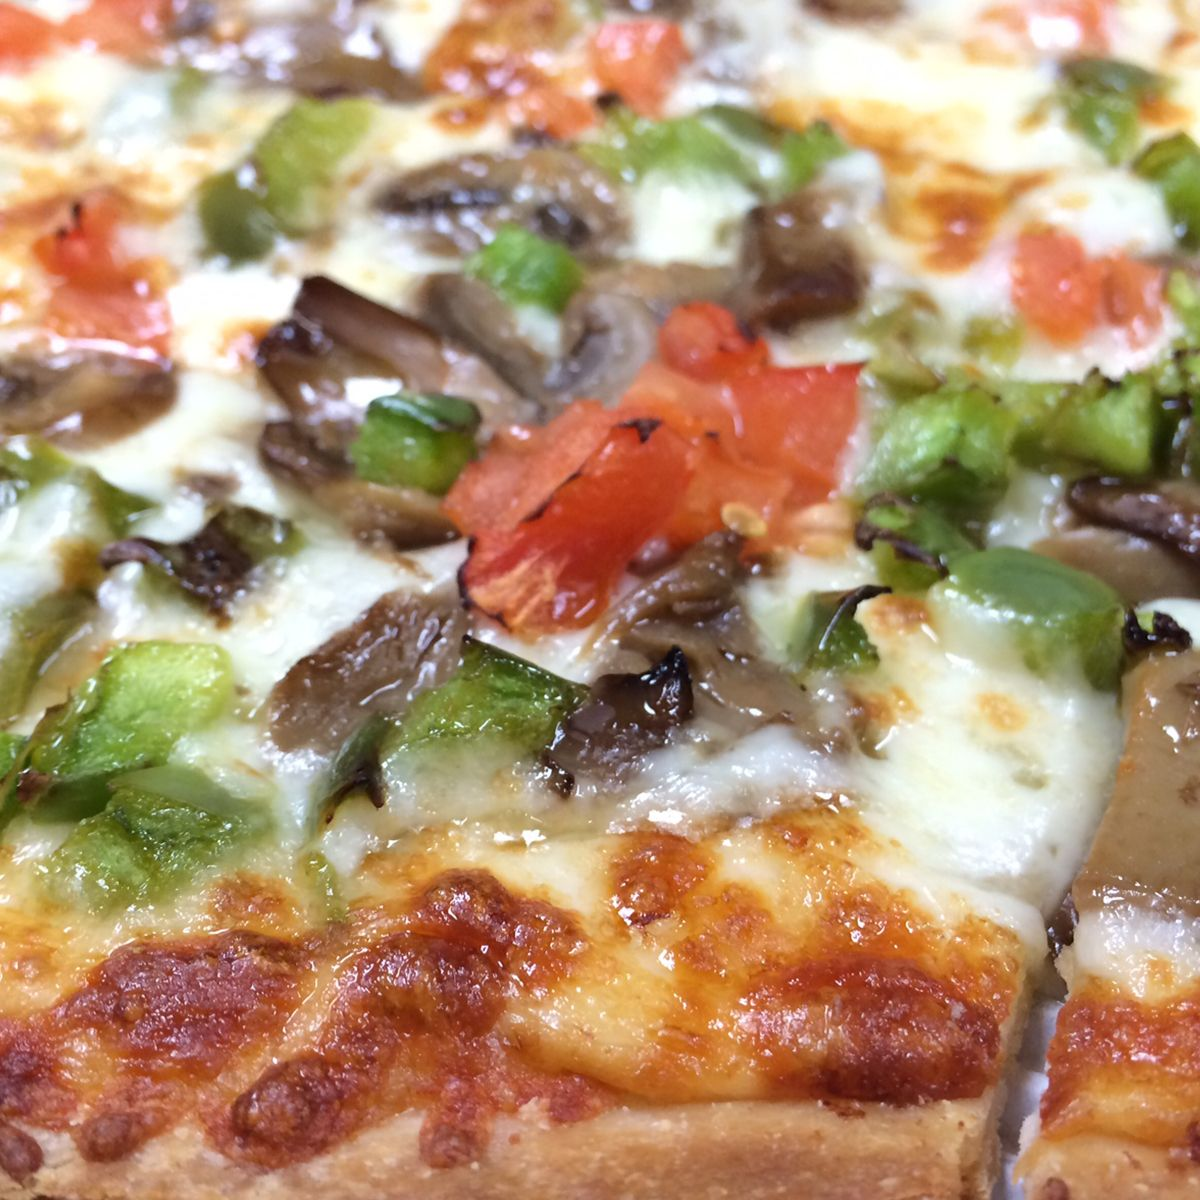 Get your daily dose of veggies at Jet's Pizza!